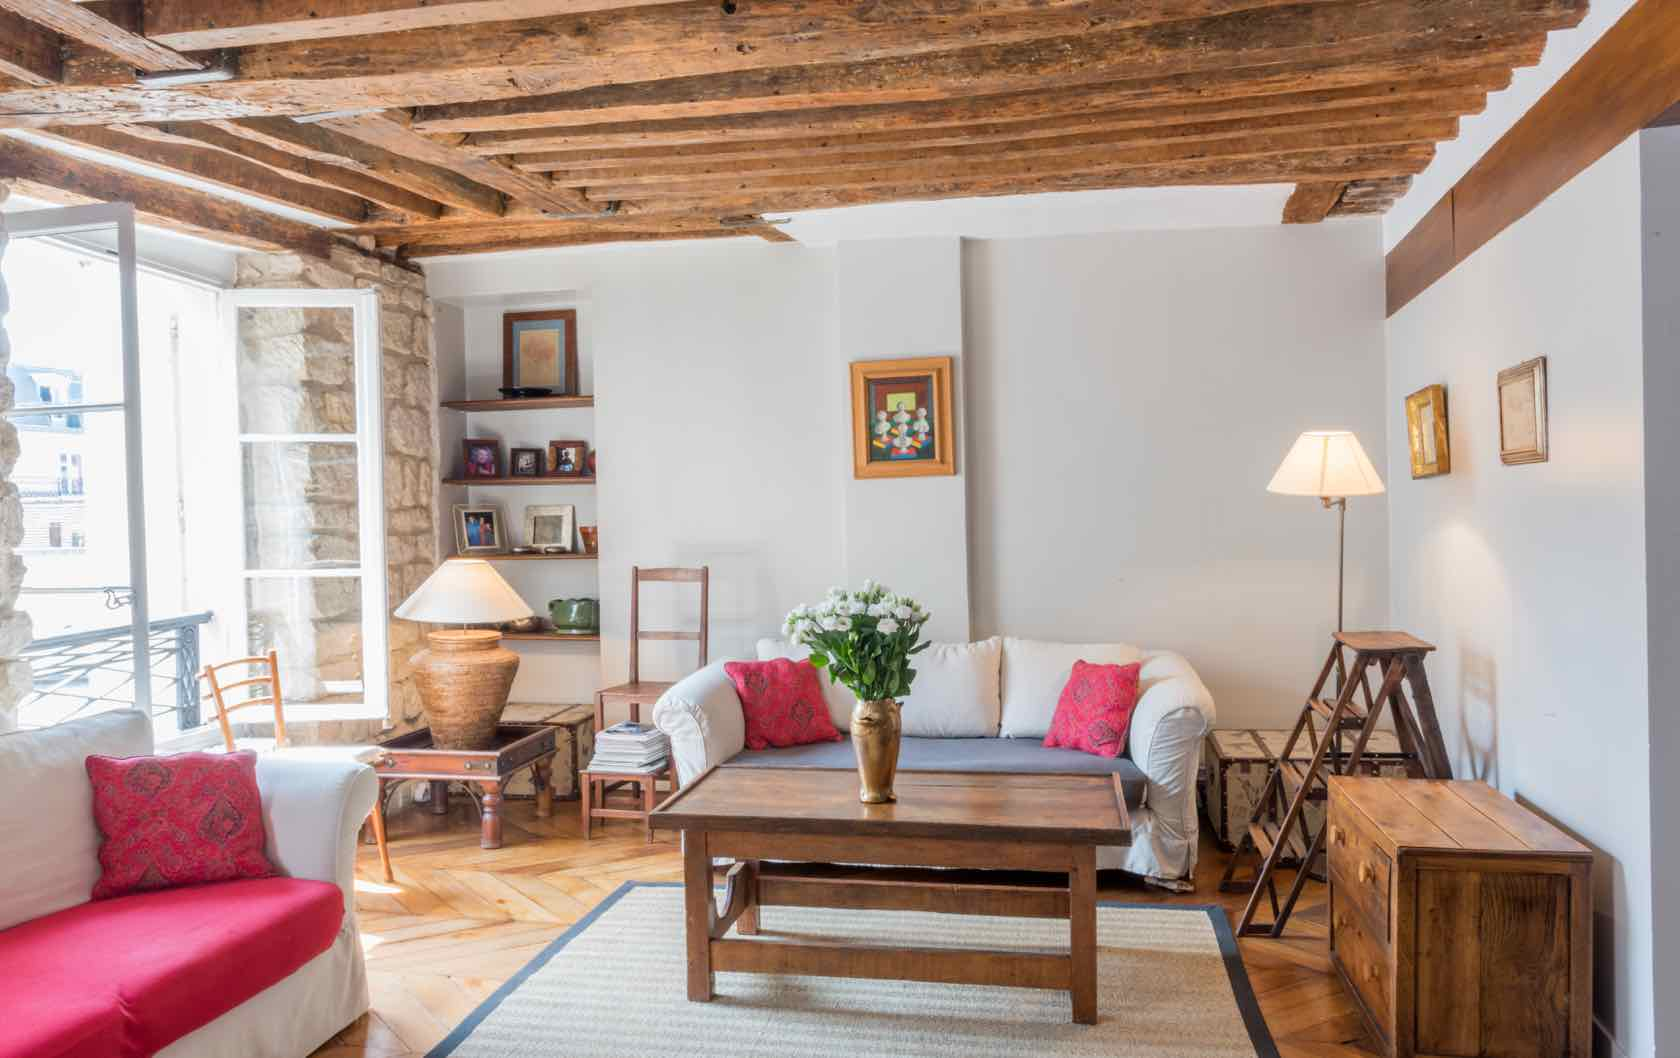 The Dolcetto Apartment - Old-World Comfort in Saint-Germain-des-Près